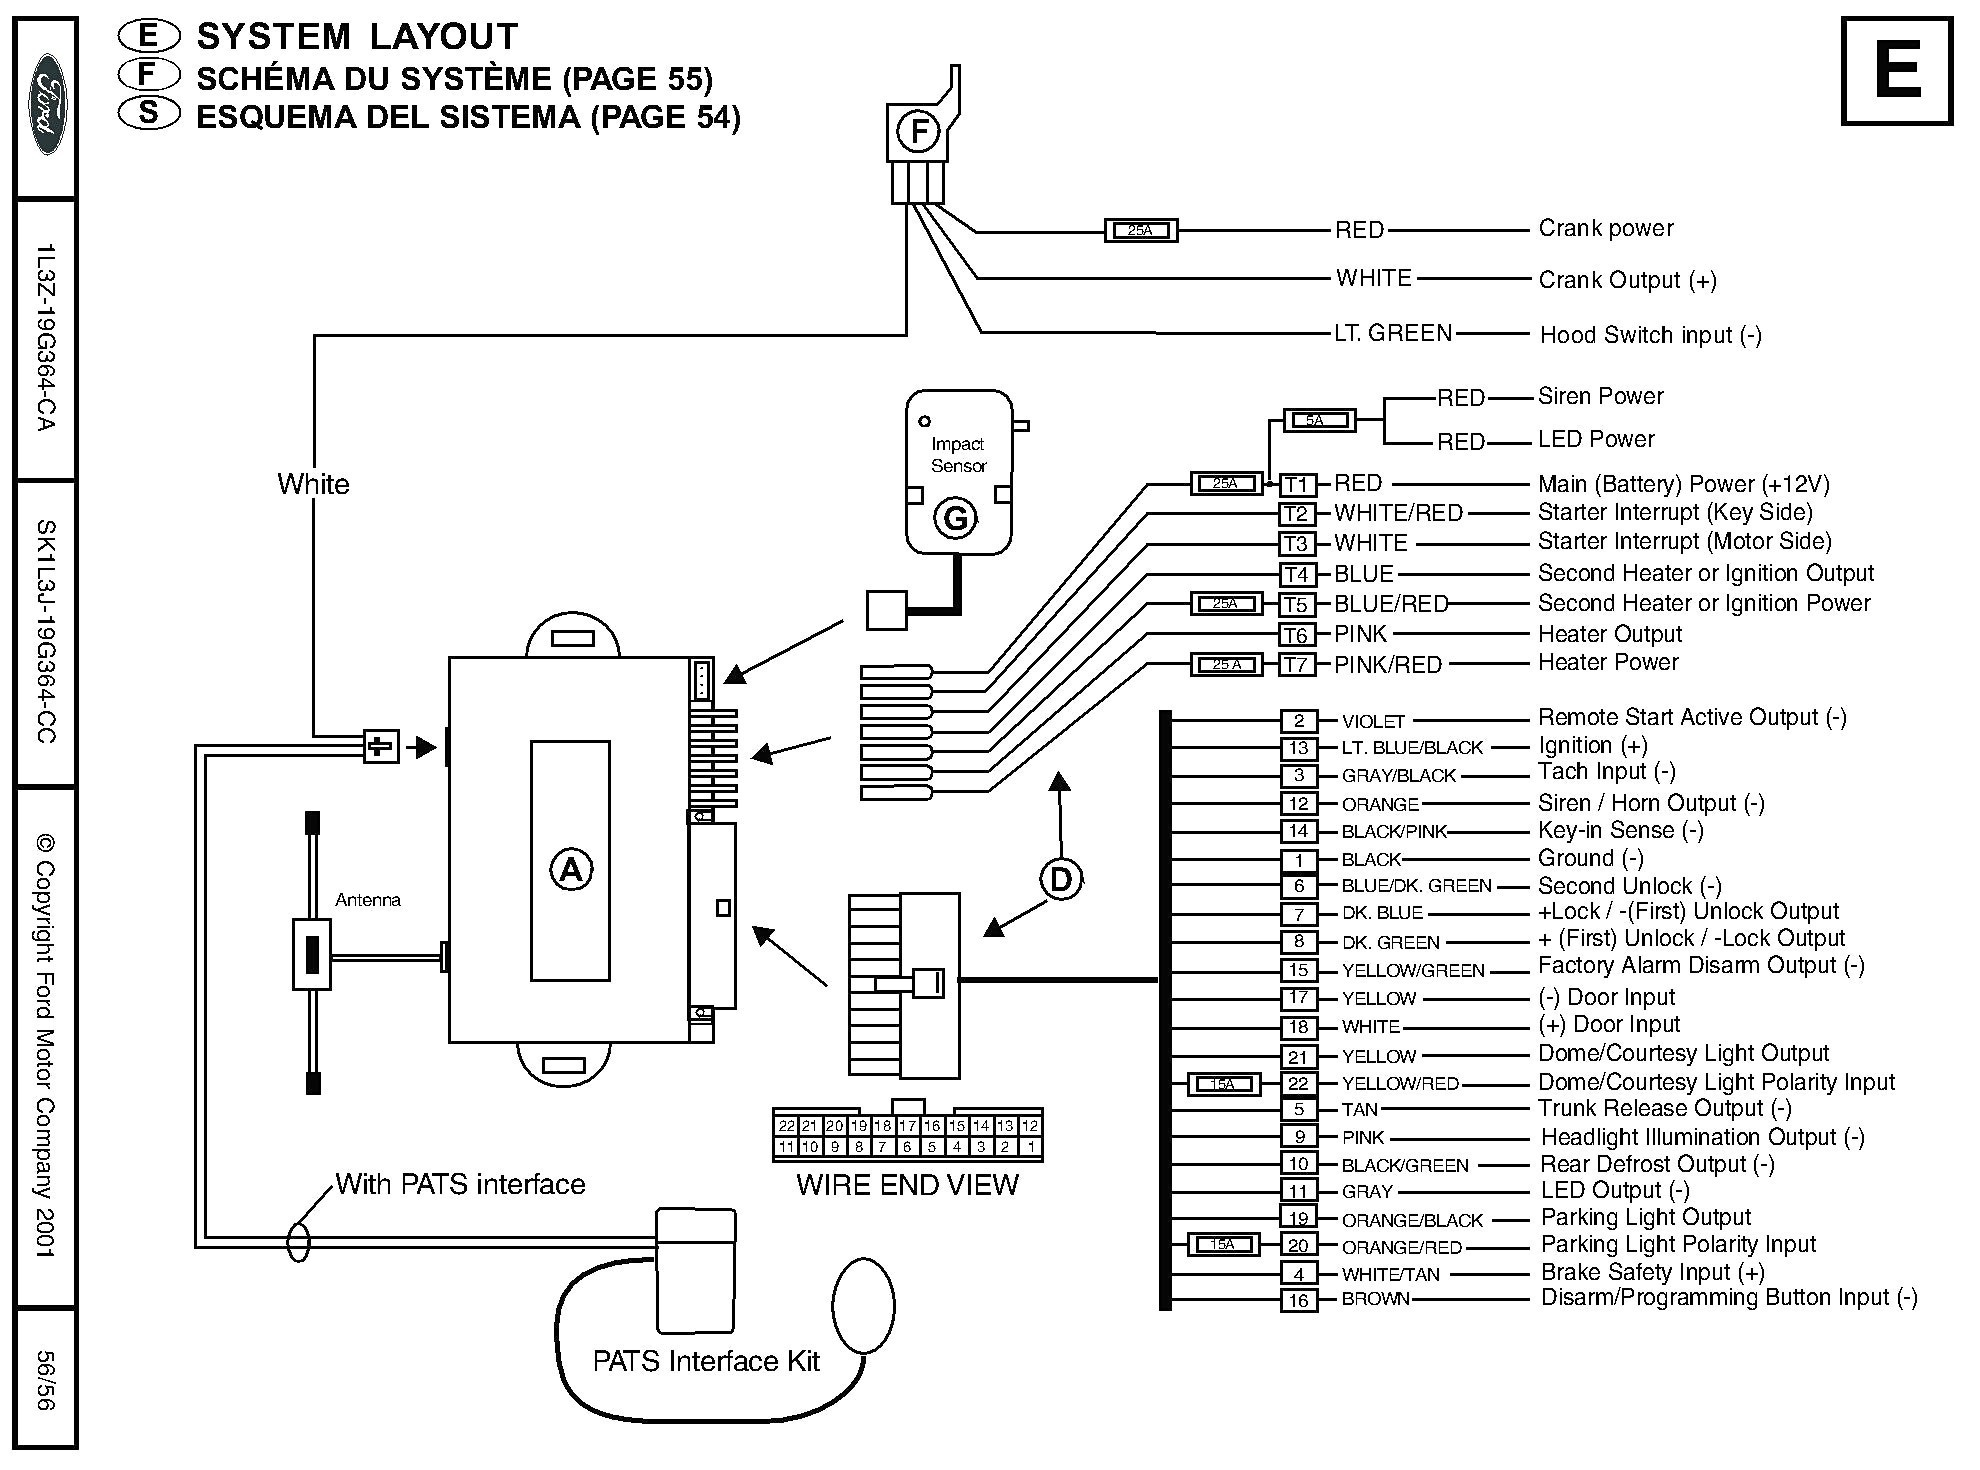 Car Alarm Wiring Diagram Ademco Alarm Wiring Diagram New Car Alarm System Wiring Diagram Of Car Alarm Wiring Diagram